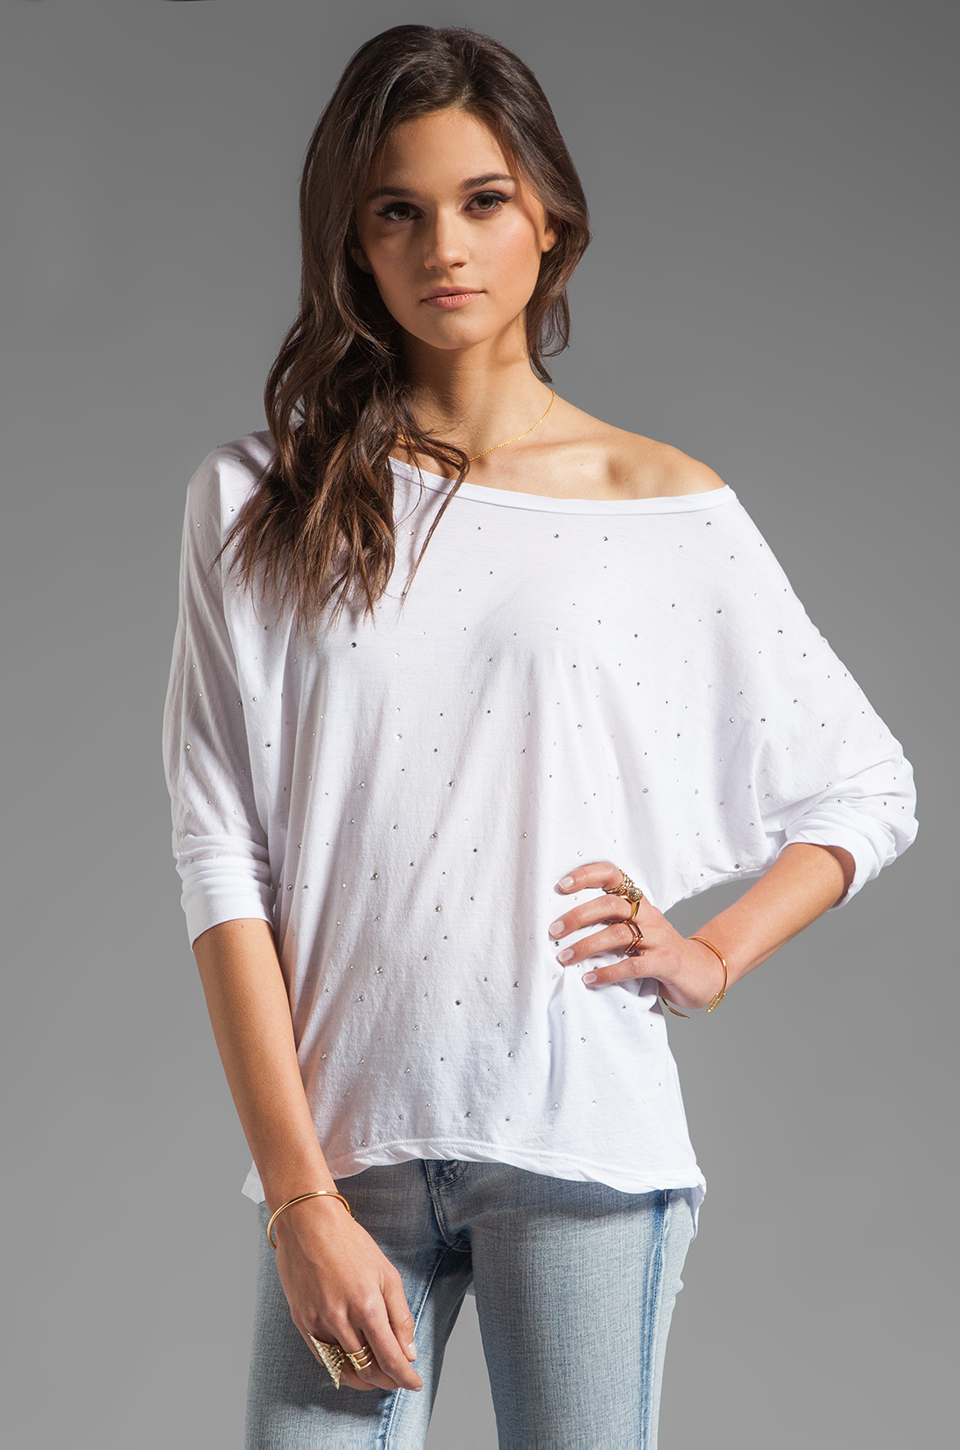 Velvet by Graham & Spencer Sheer Jersey Carden Top in White